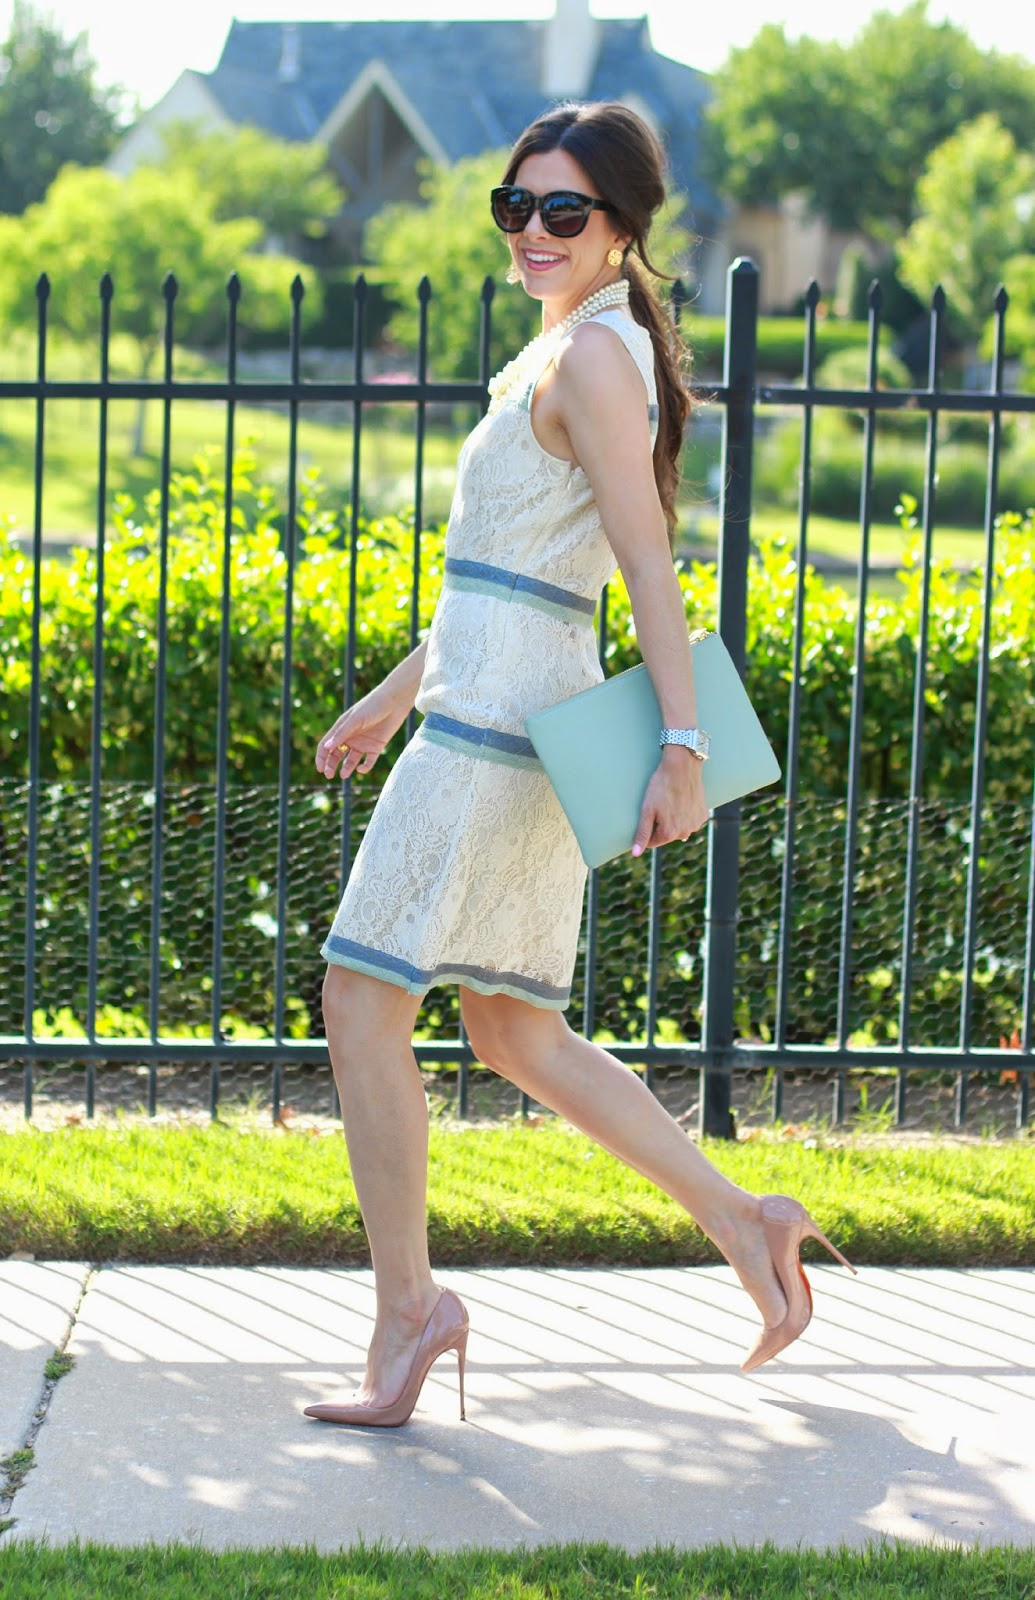 www.Thesweetestthingblog.com, emily gemma, lame boutique dress, christian louboutin so kate nude pumps, tulsa, ok , tulsa ok fashion blog, tulsa ok fashion, crew pearl necklace, michelle diamond deco watch, mint clutch, forever 21 sunglasses, what to wear to a summer wedding, what to wear to church in summer